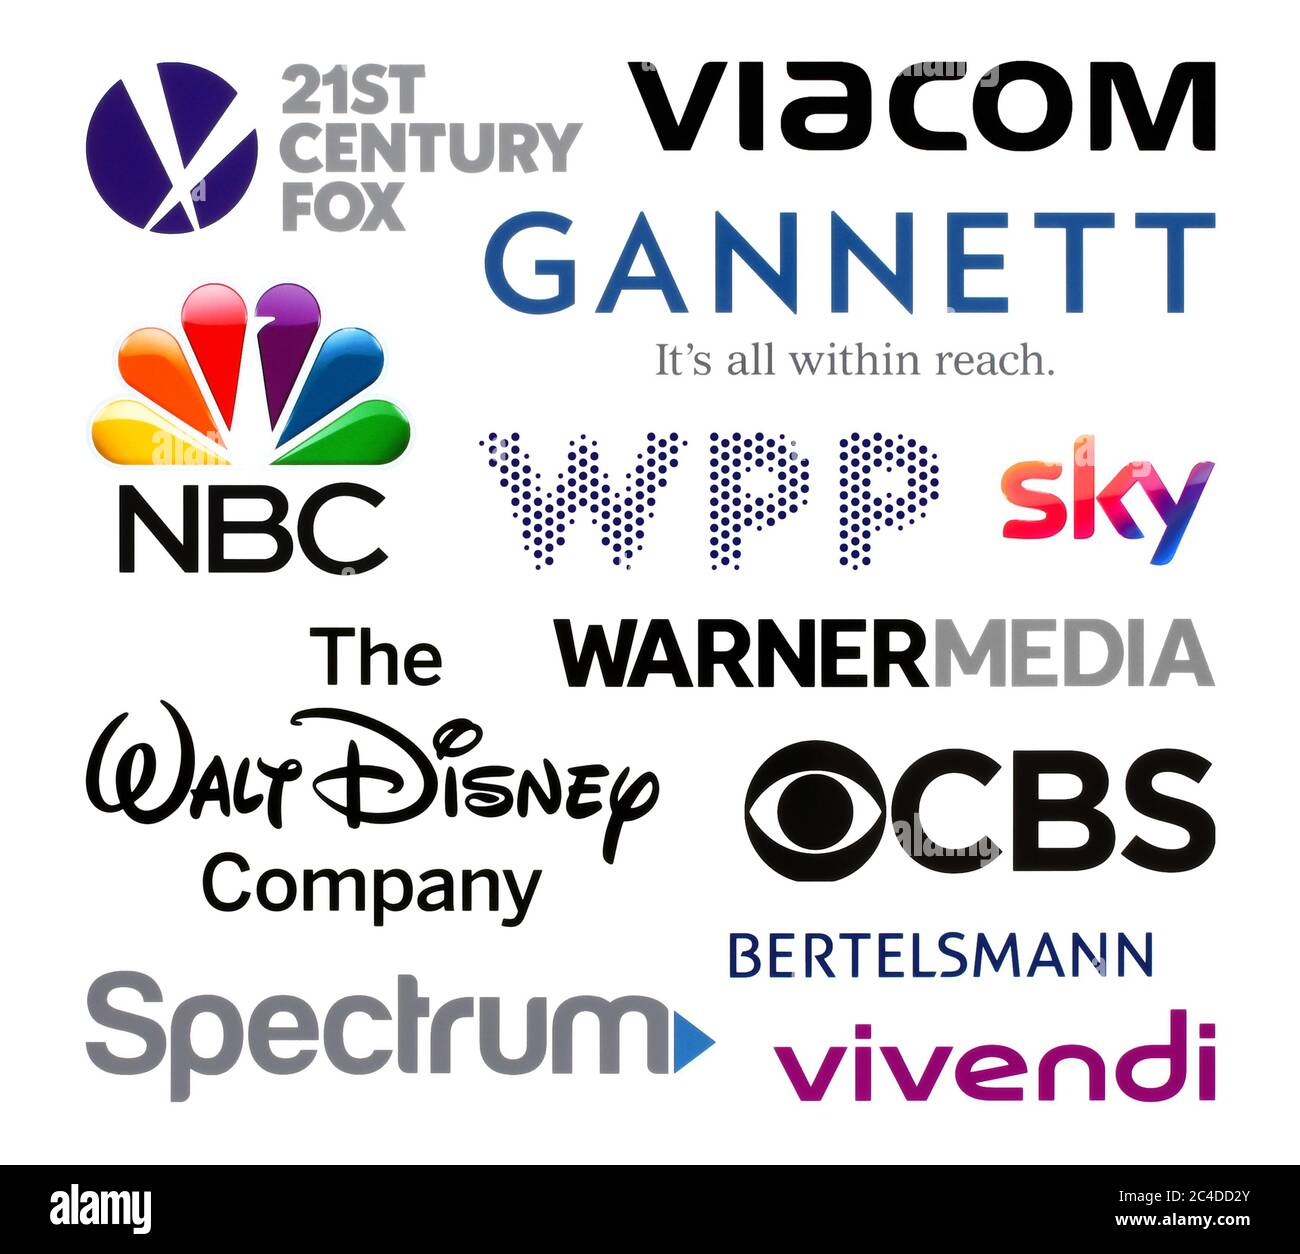 Kiev, Ukraine - February 23, 2020: Logos collection of the biggest world broadcasting companies, such as: 21st Century Fox, Viacom, Gannett, NBC, WPP, Stock Photo